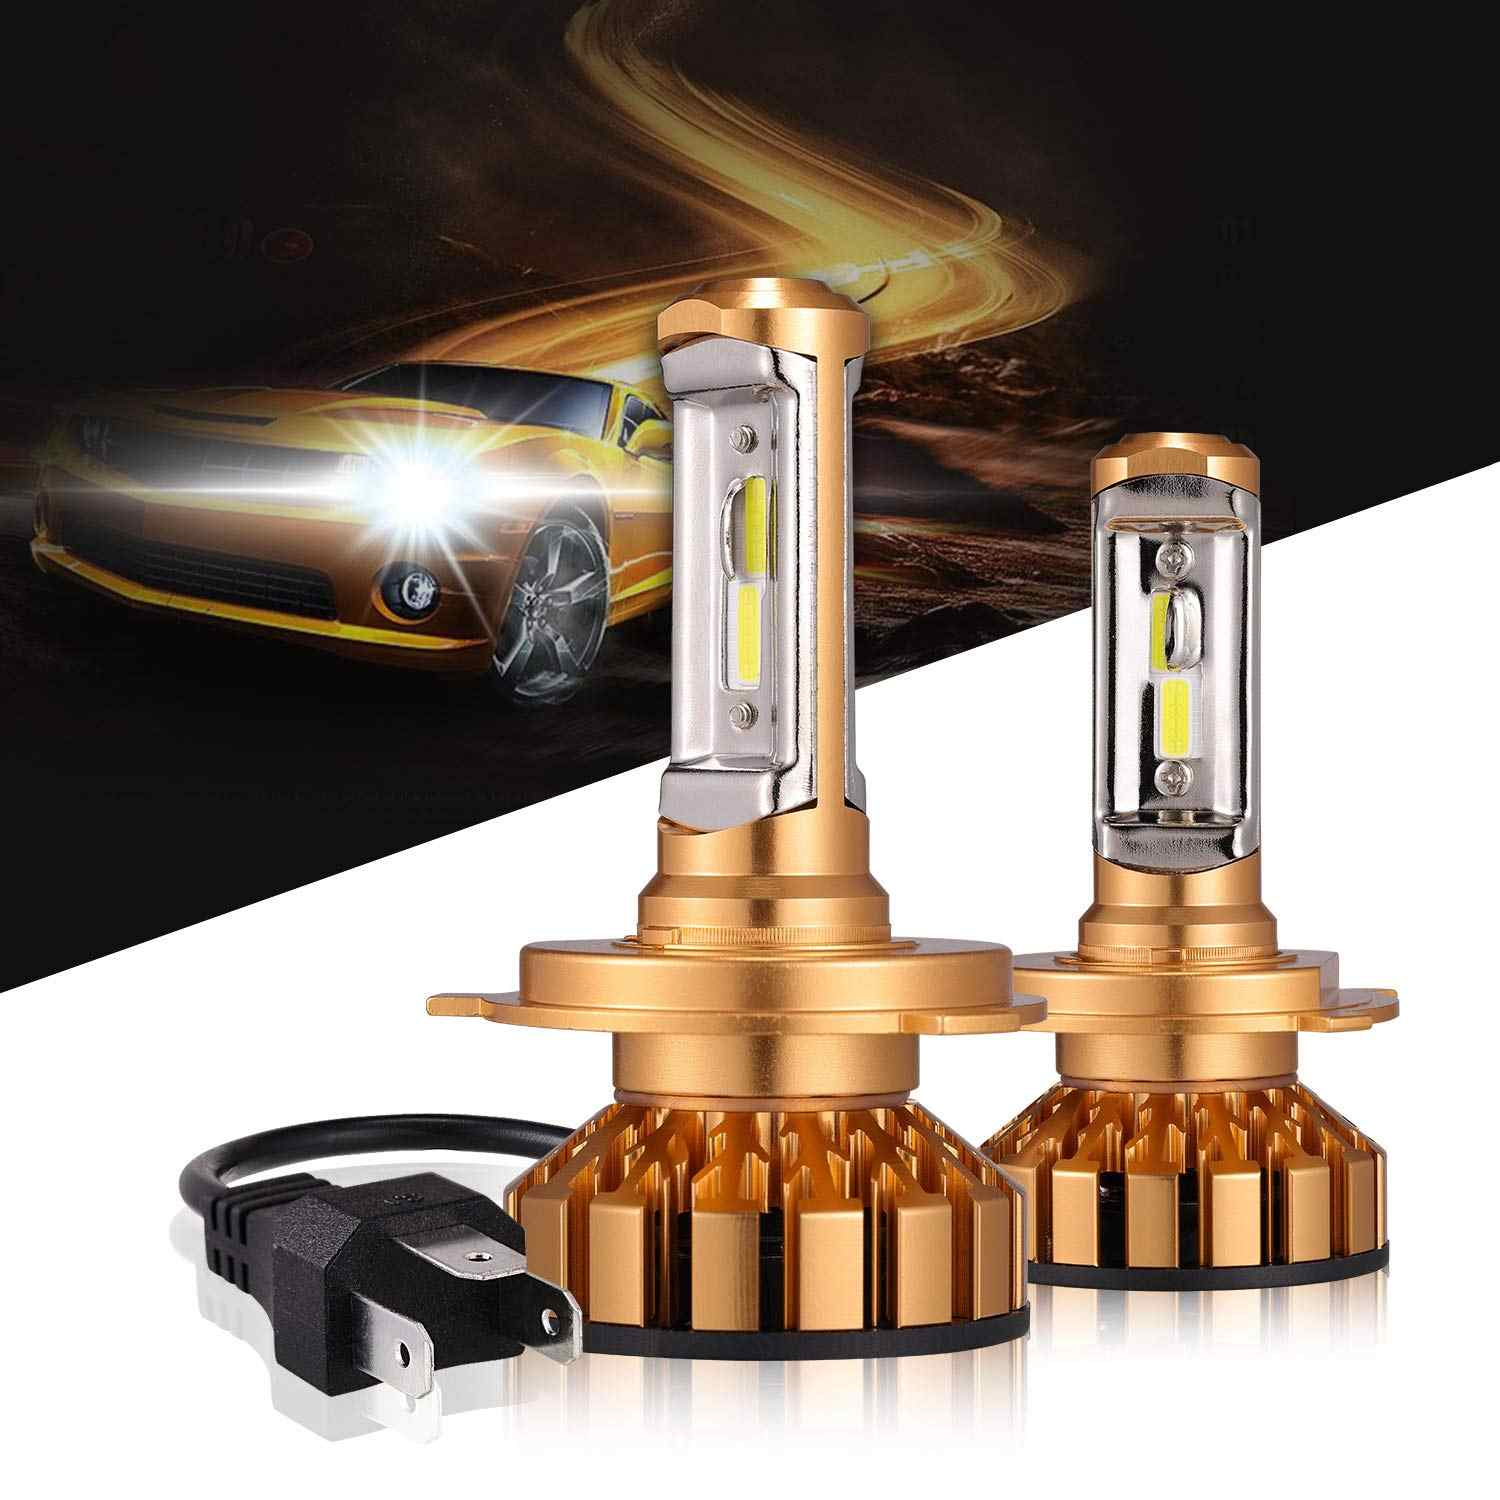 H1 H3 H7 9006 9005 9012 H4 LED Headlight Bulbs 50W 10000 Lumens 6000K Xenon White Extremely Bright COB Chips Led Conversion Kit